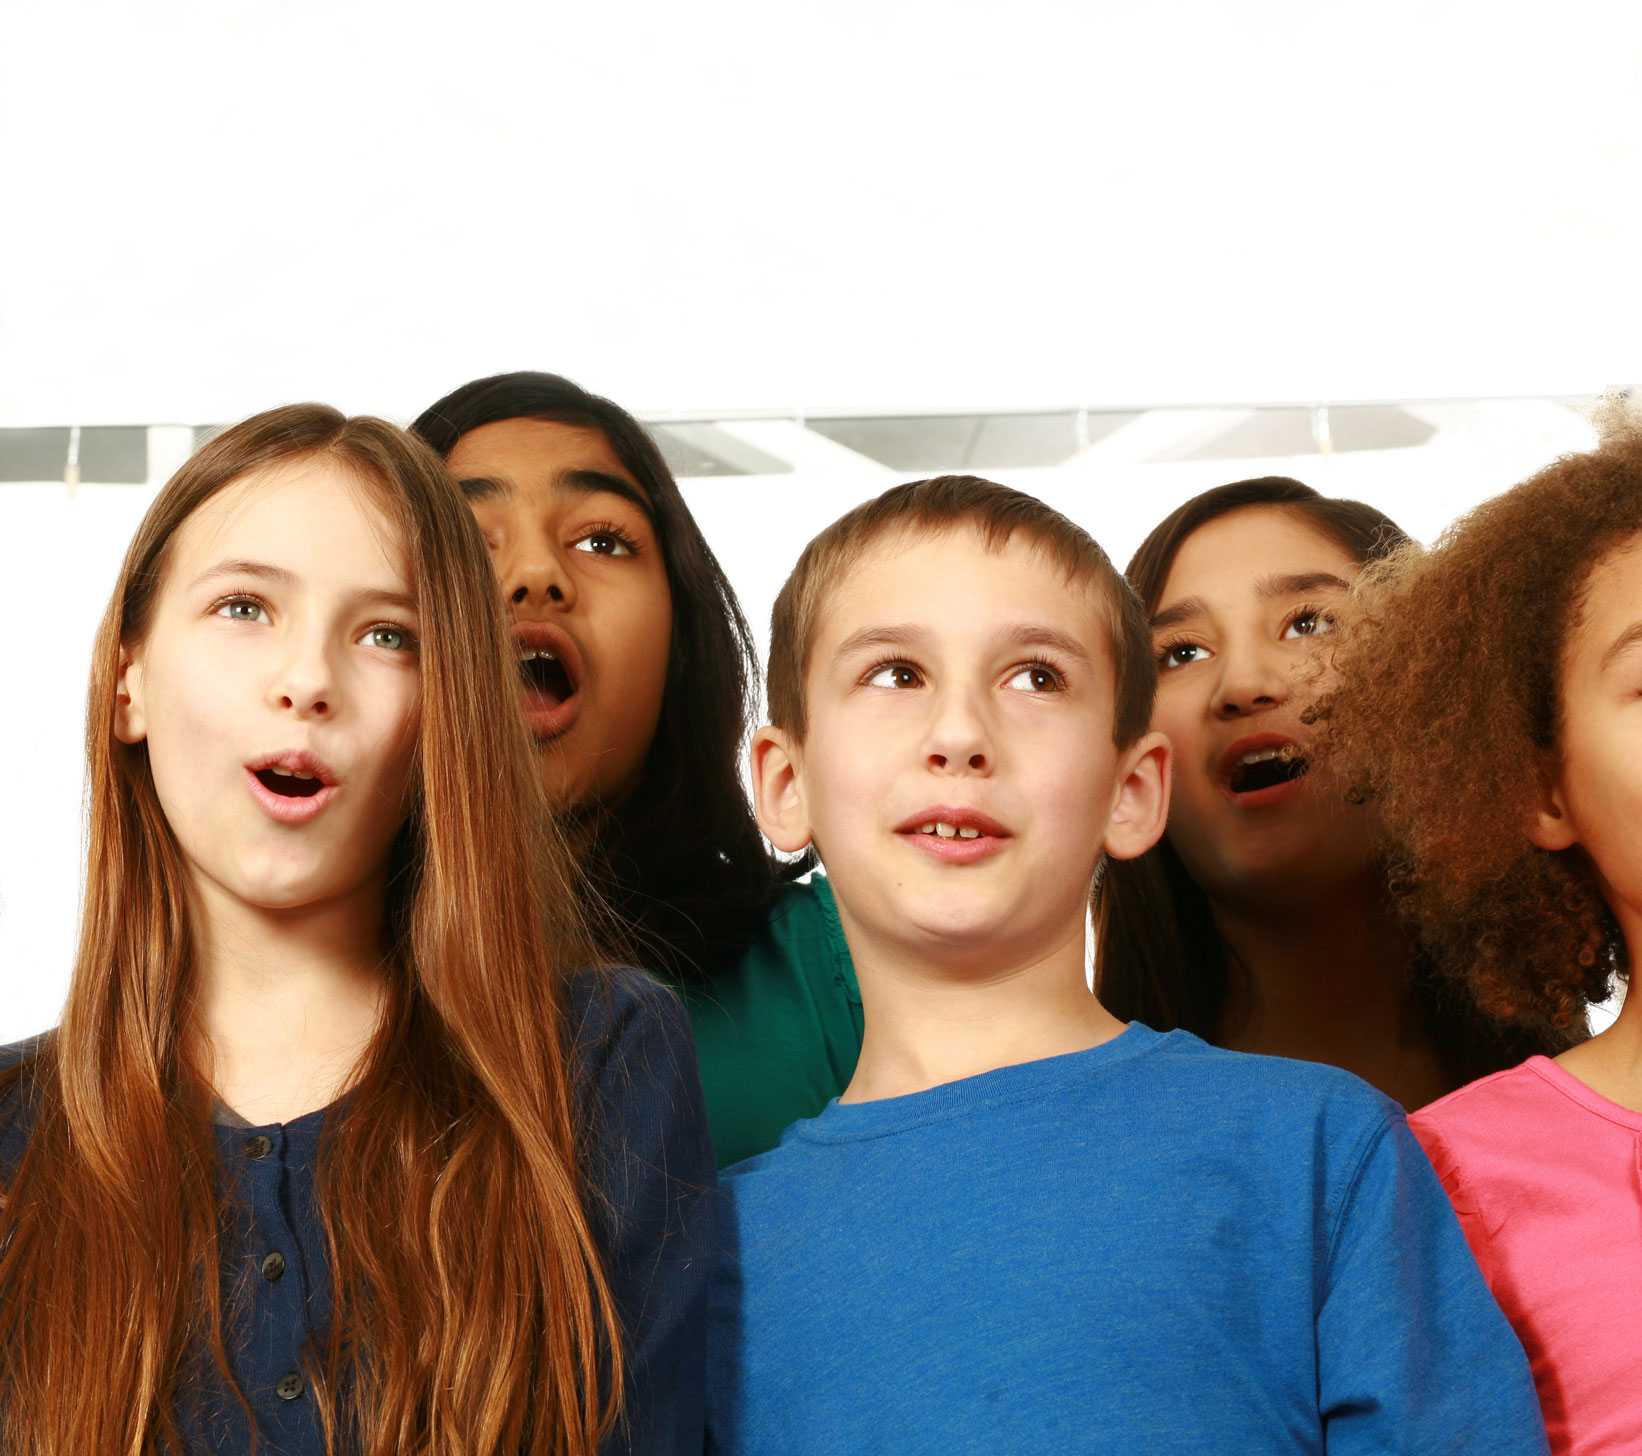 Group-of-children-reciting-poem-together-resized.jpg